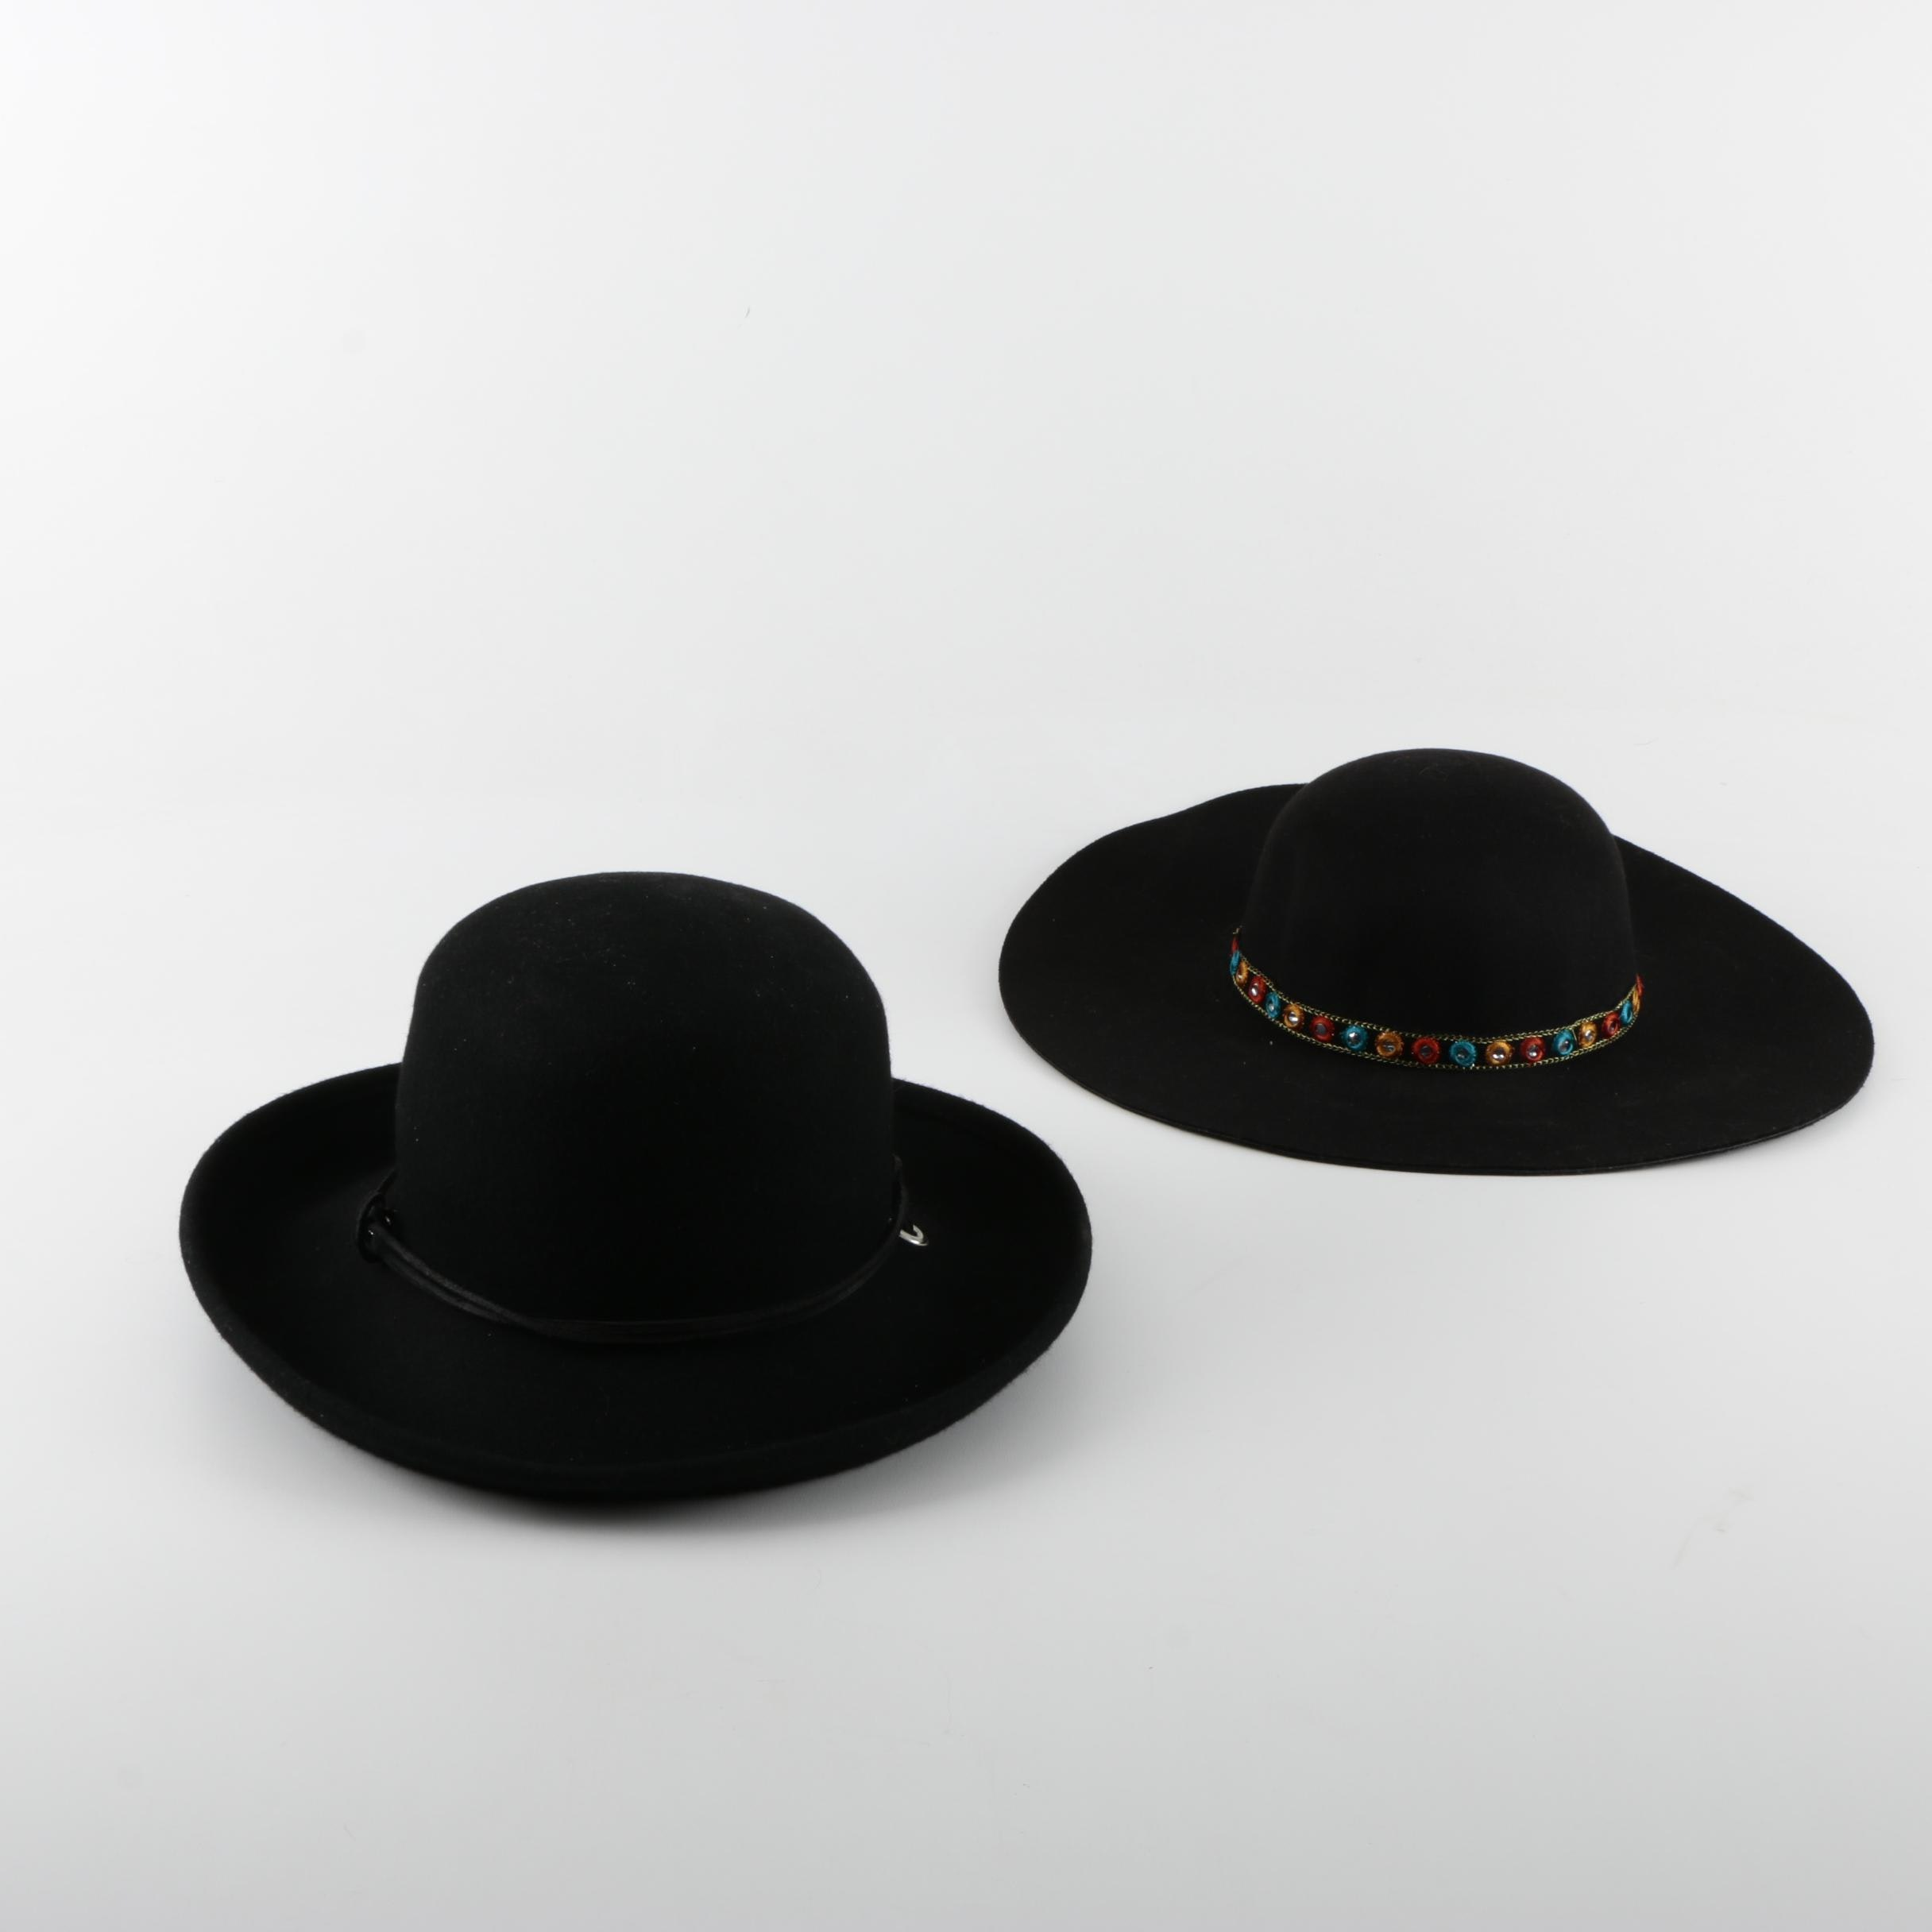 Women's Wide-Brimmed Black Felted Hats